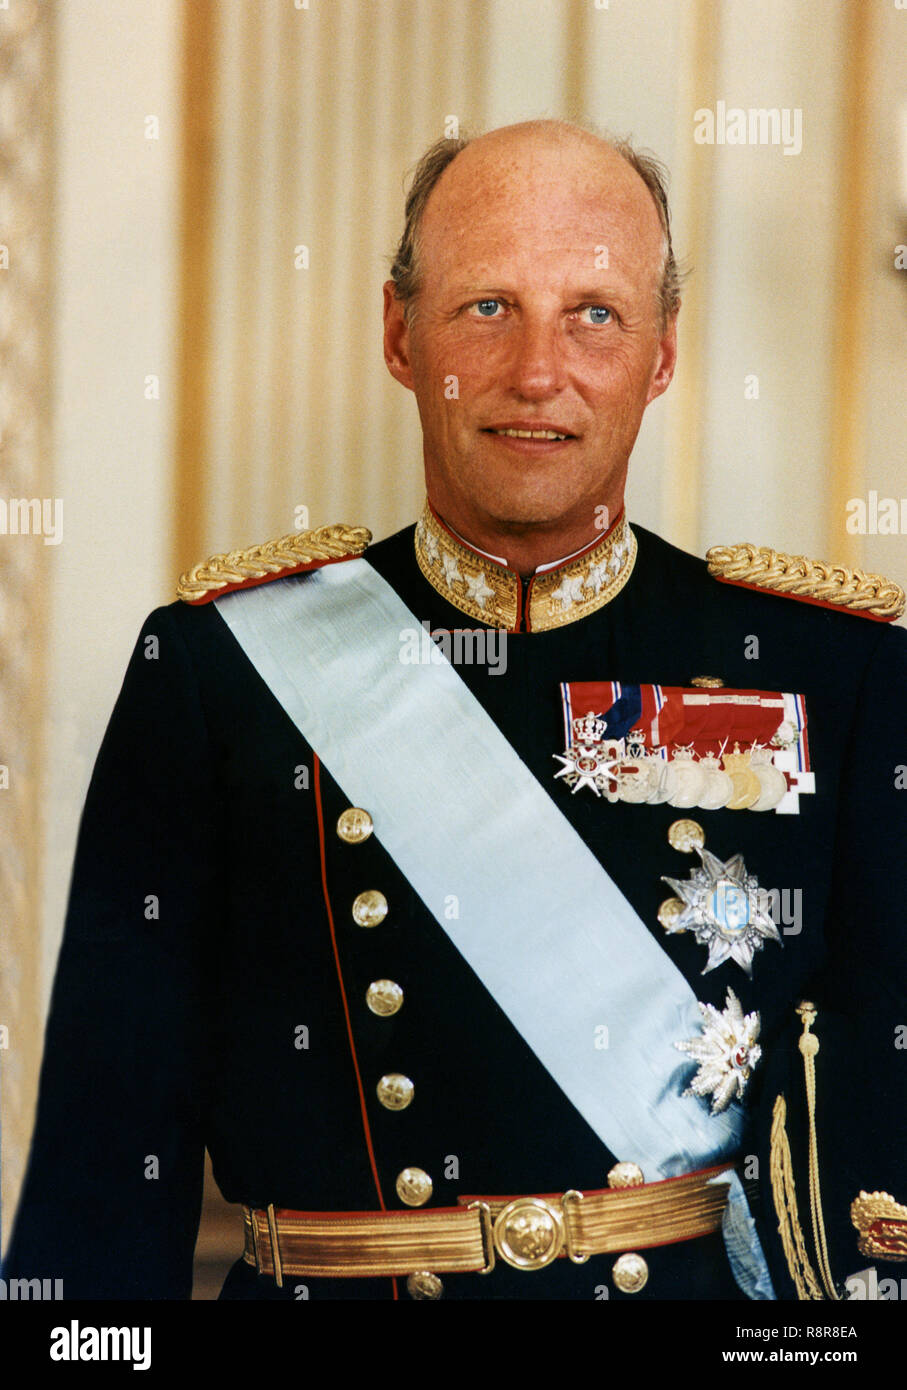 KING HARALD of Norway in uniform and regalia - Stock Image